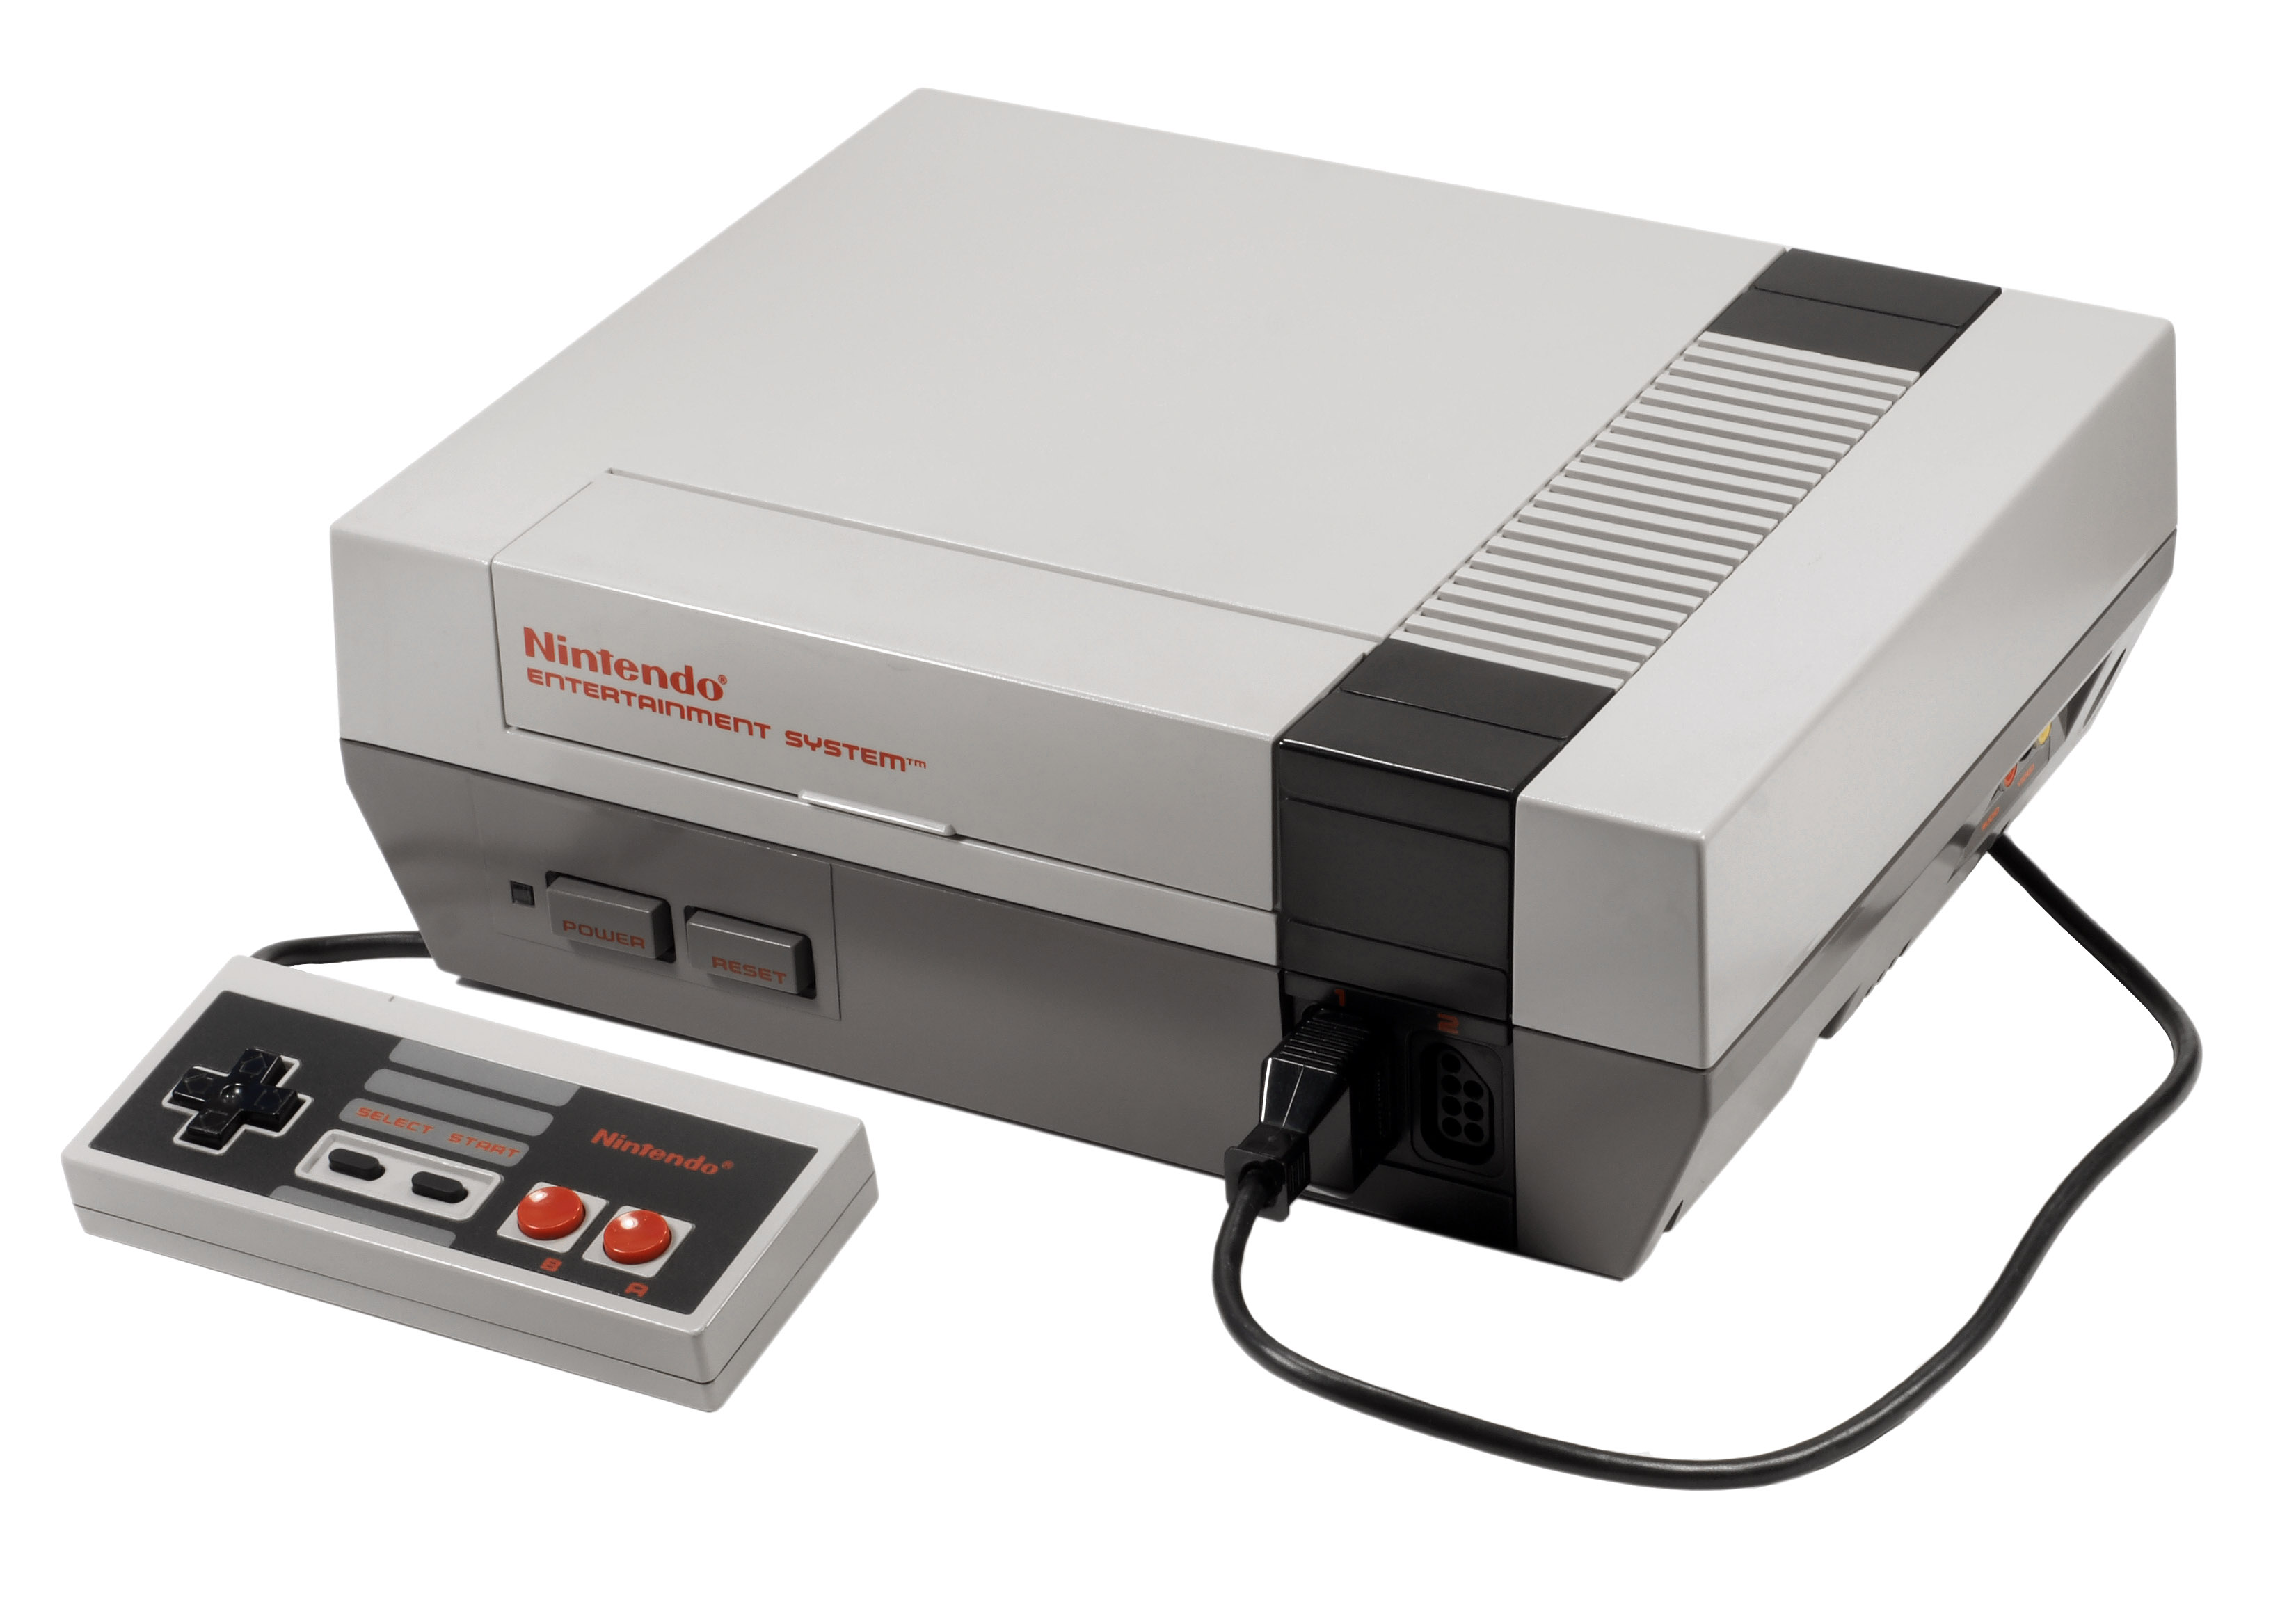 Nintendo Entertainment System (NES) with Controller